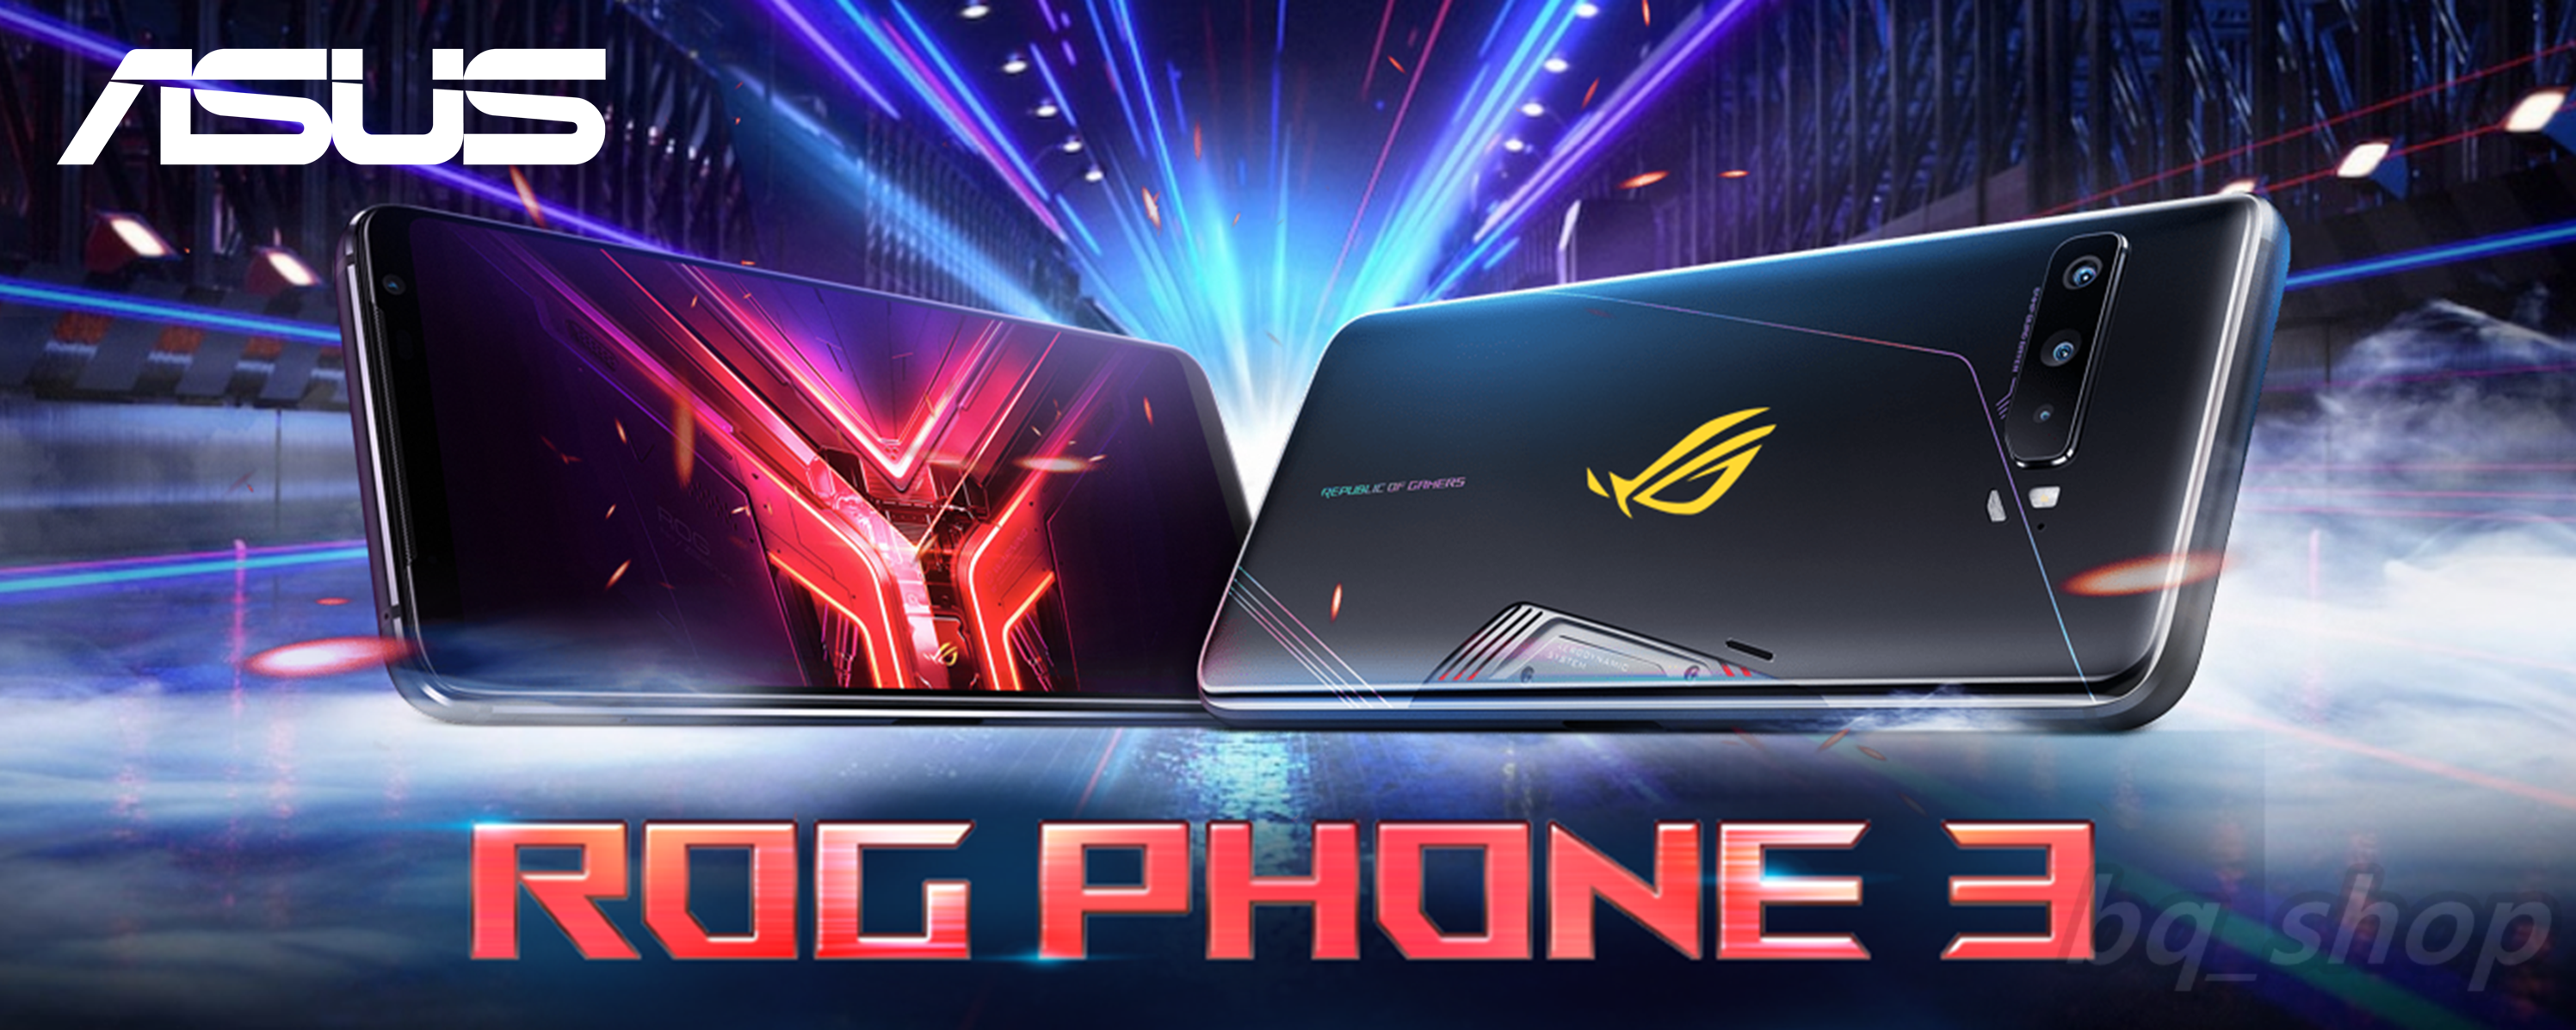 screencapture-asus-us-phone-rog-phone-3-2020-07-28-13-37-18-.png